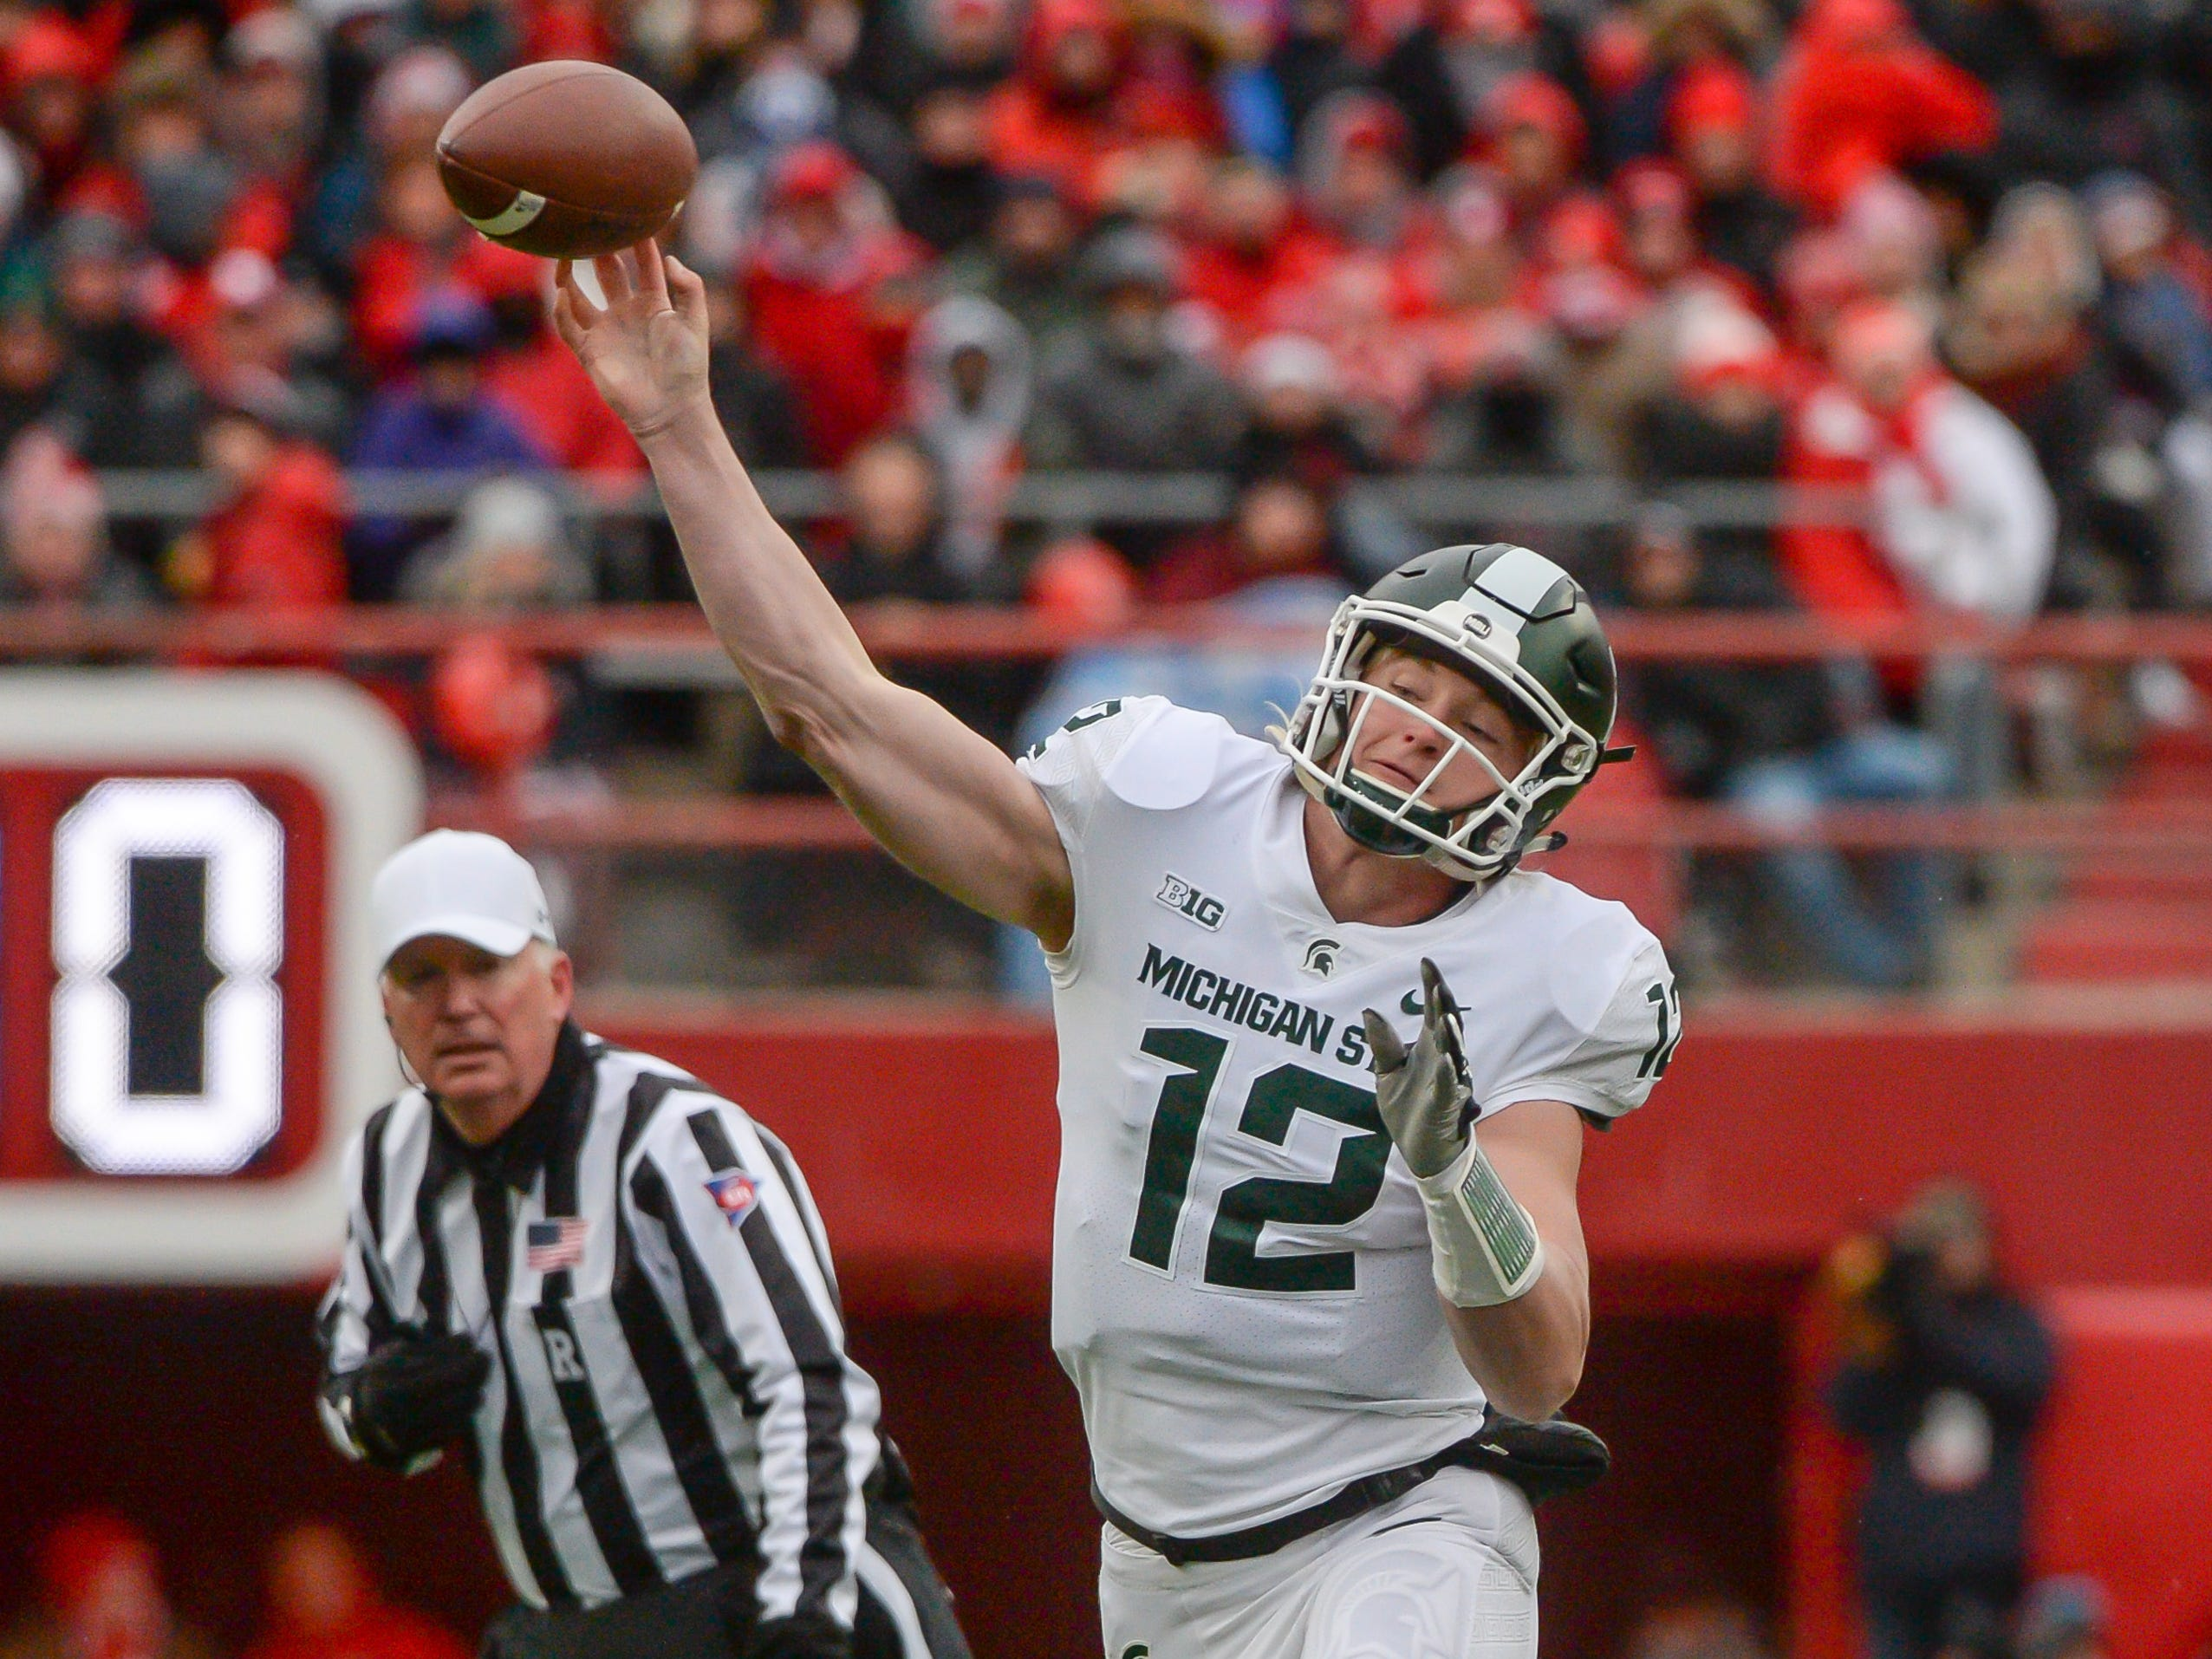 Michigan State quarterback Rocky Lombardi attempts a pass against Nebraska in the first half on Saturday, Nov. 17, 2018, in Lincoln, Neb.